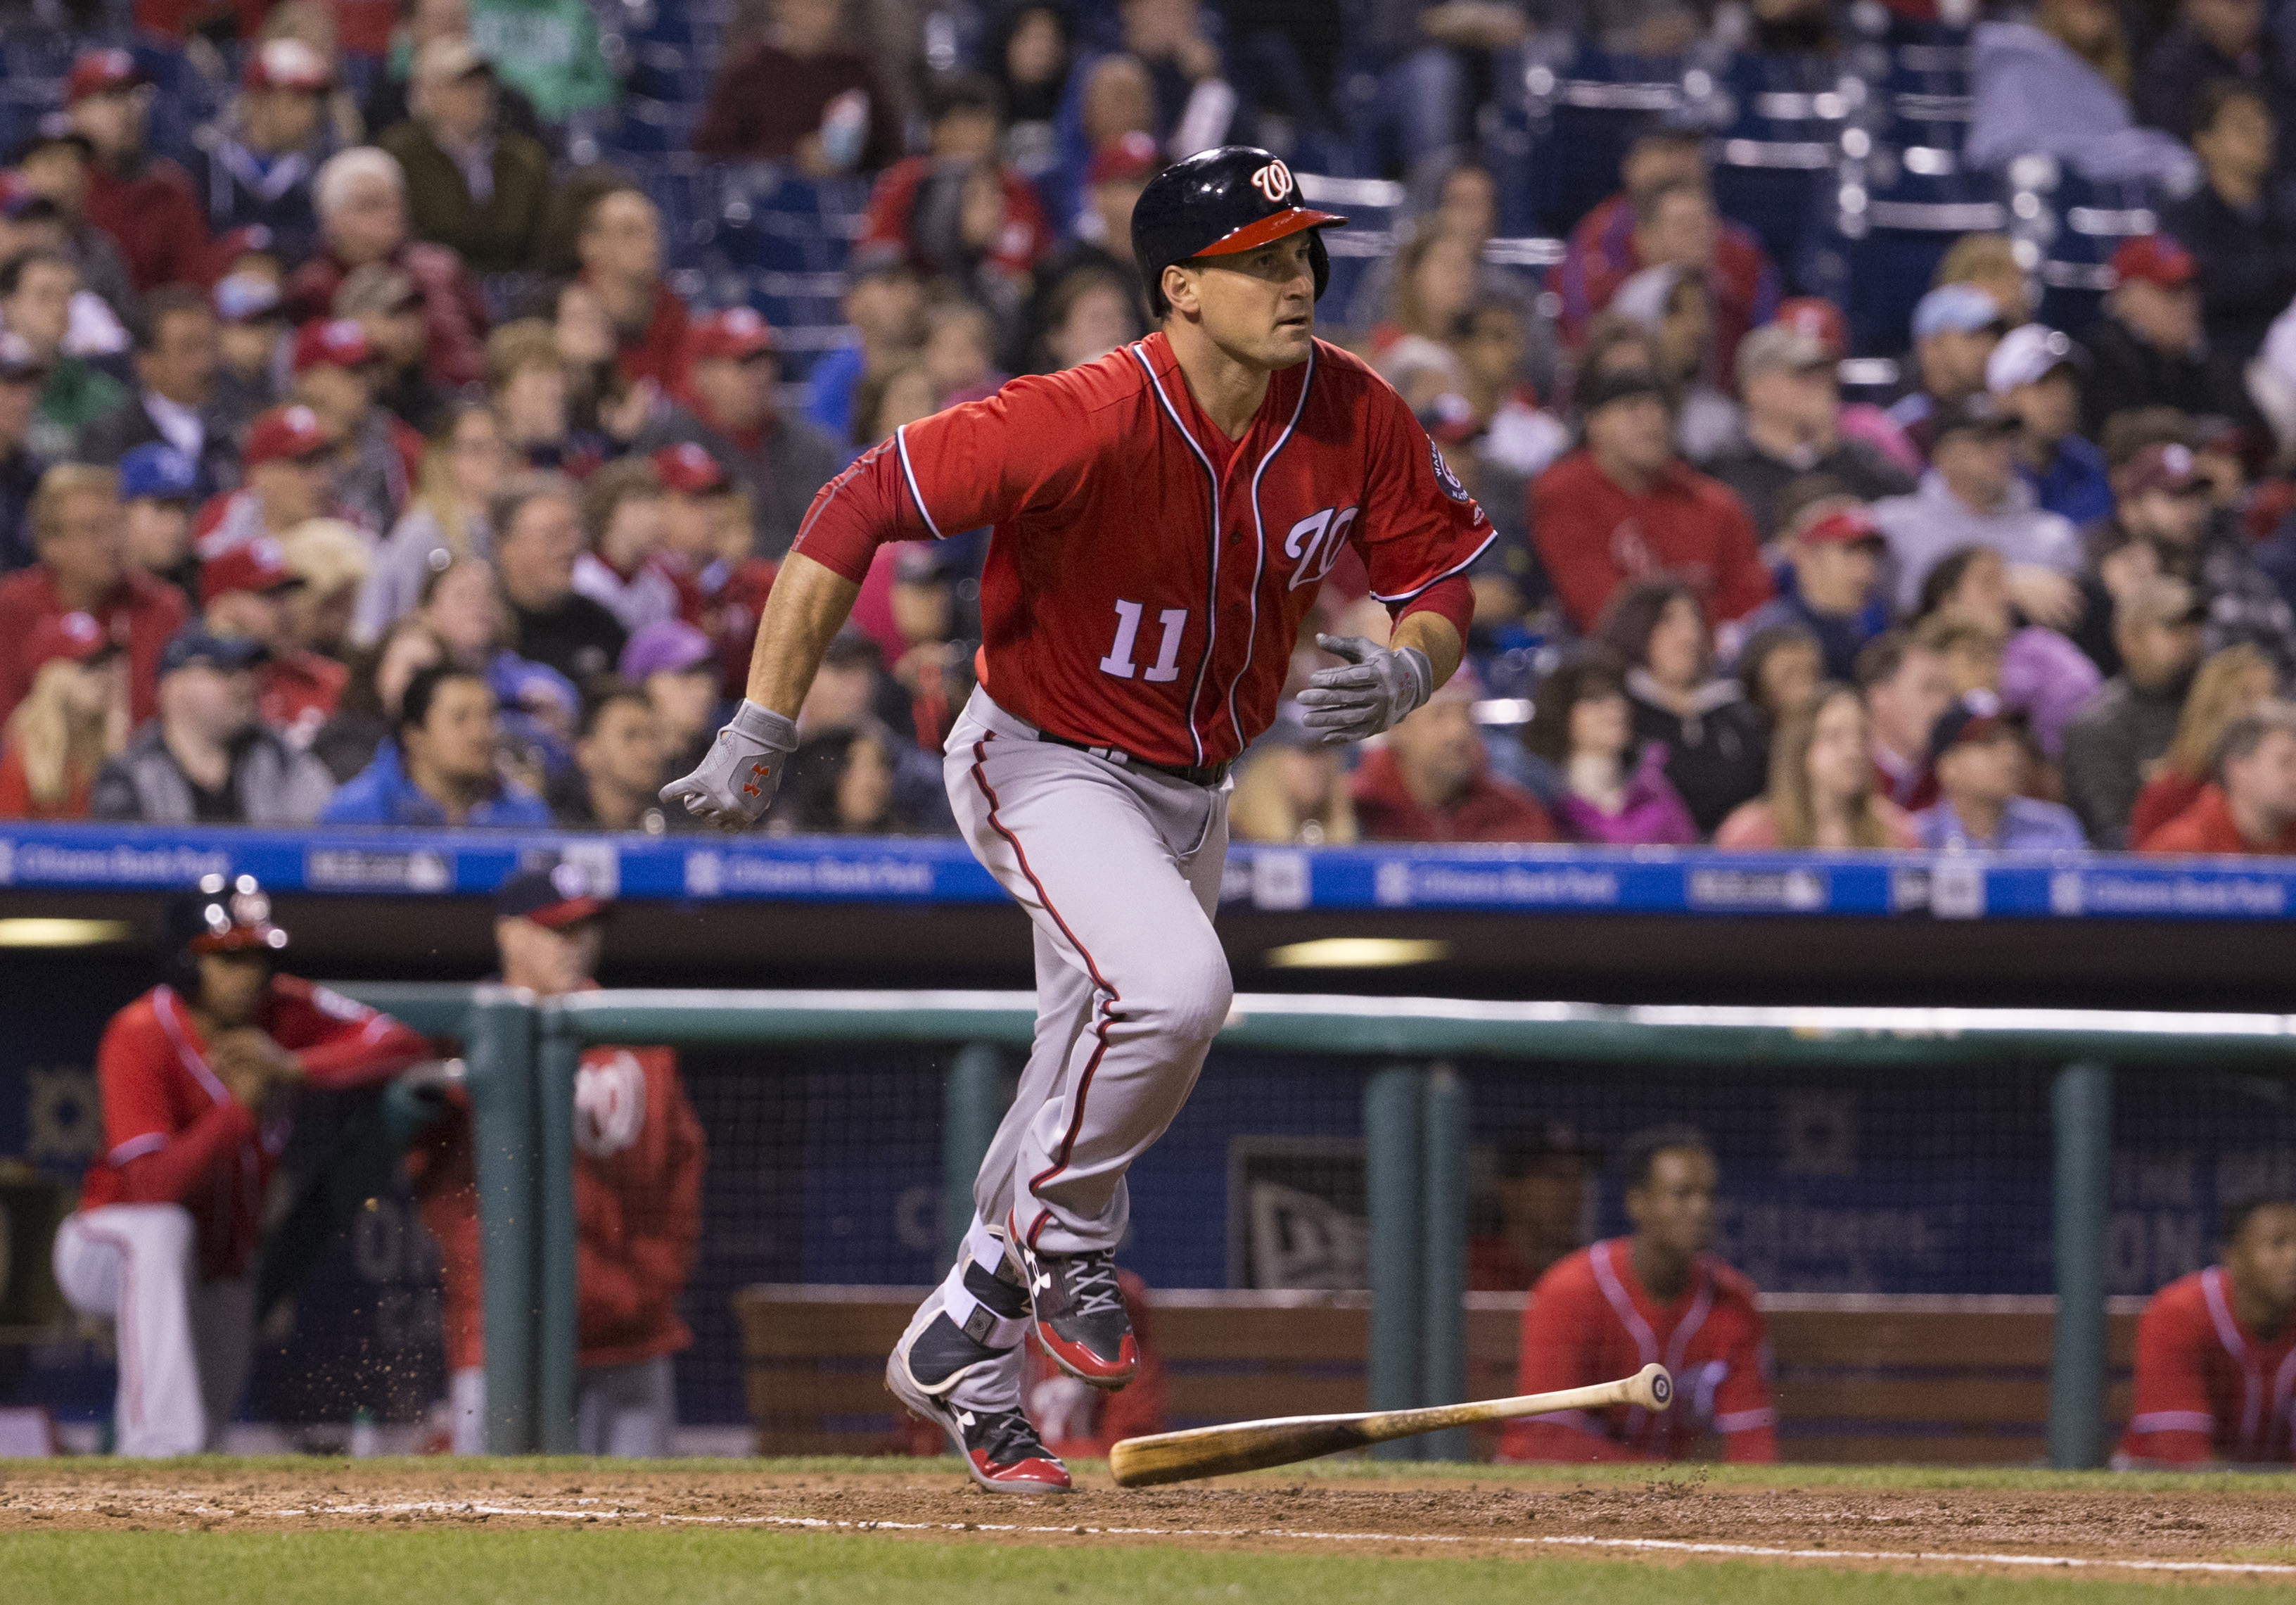 Ryan Zimmerman Is Leading the League in Just About Everything